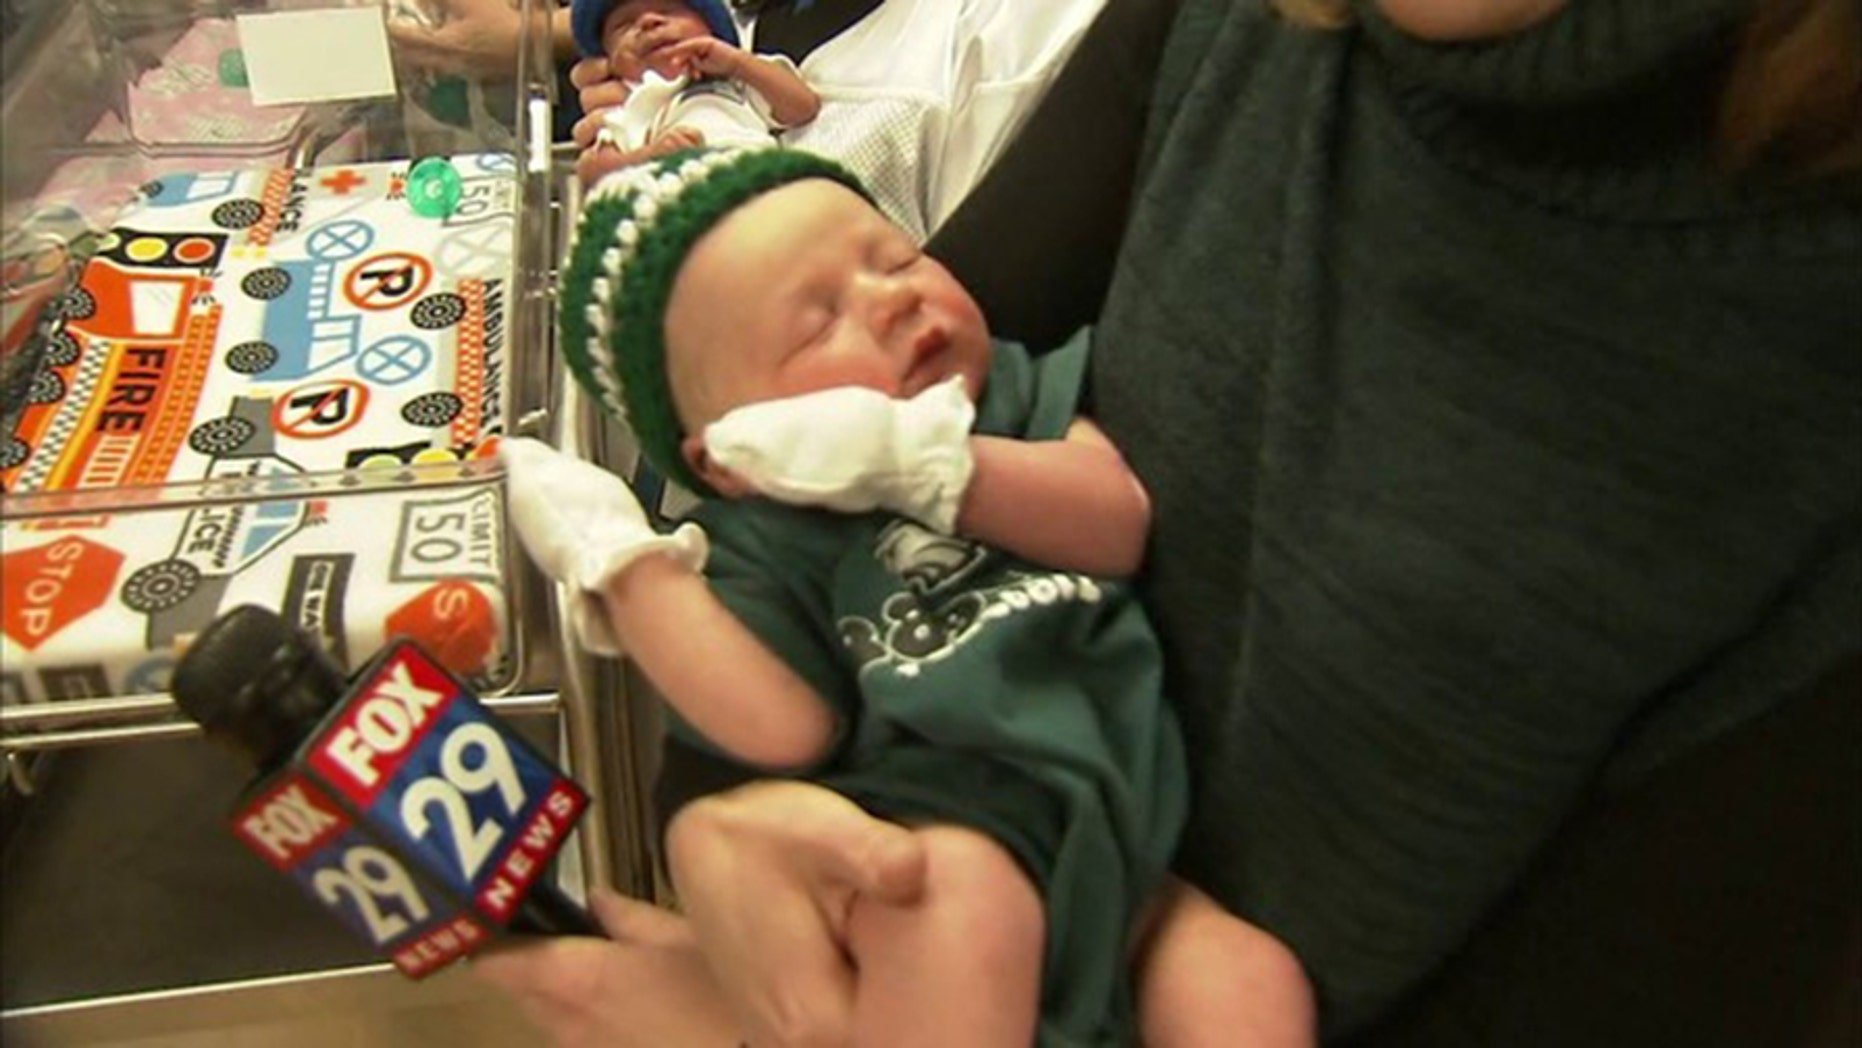 One of the world's newest Eagles fan attended a pep rally at Holy Redeemer Hospital in Pennsylvania.